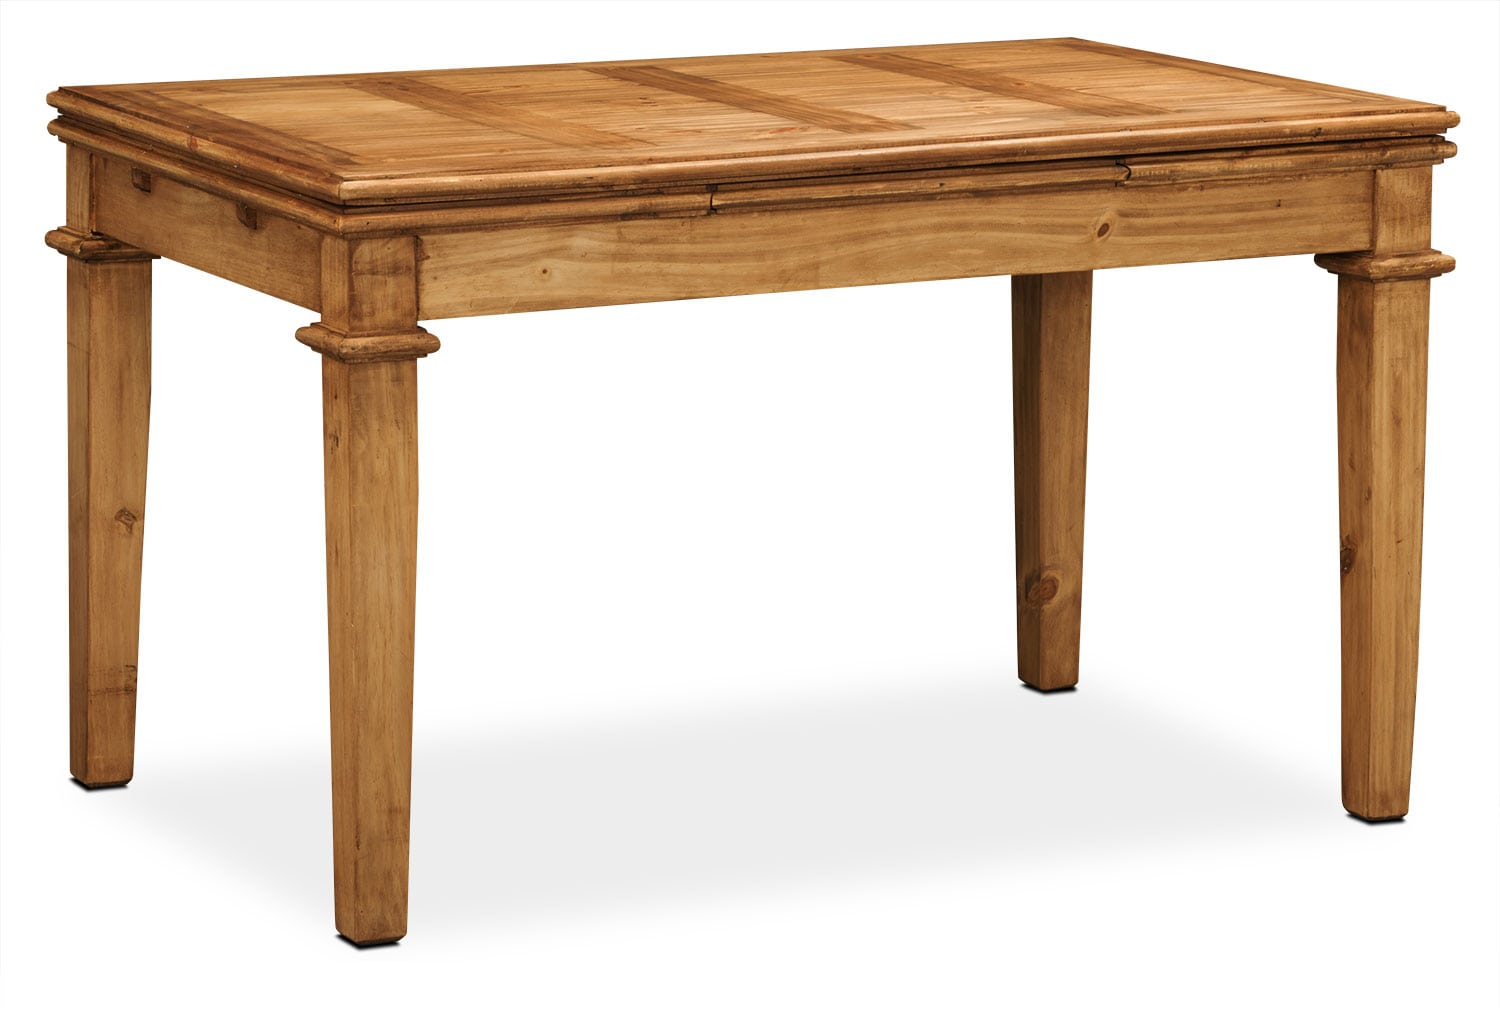 Santa Fe Rusticos Solid Pine Dining Table